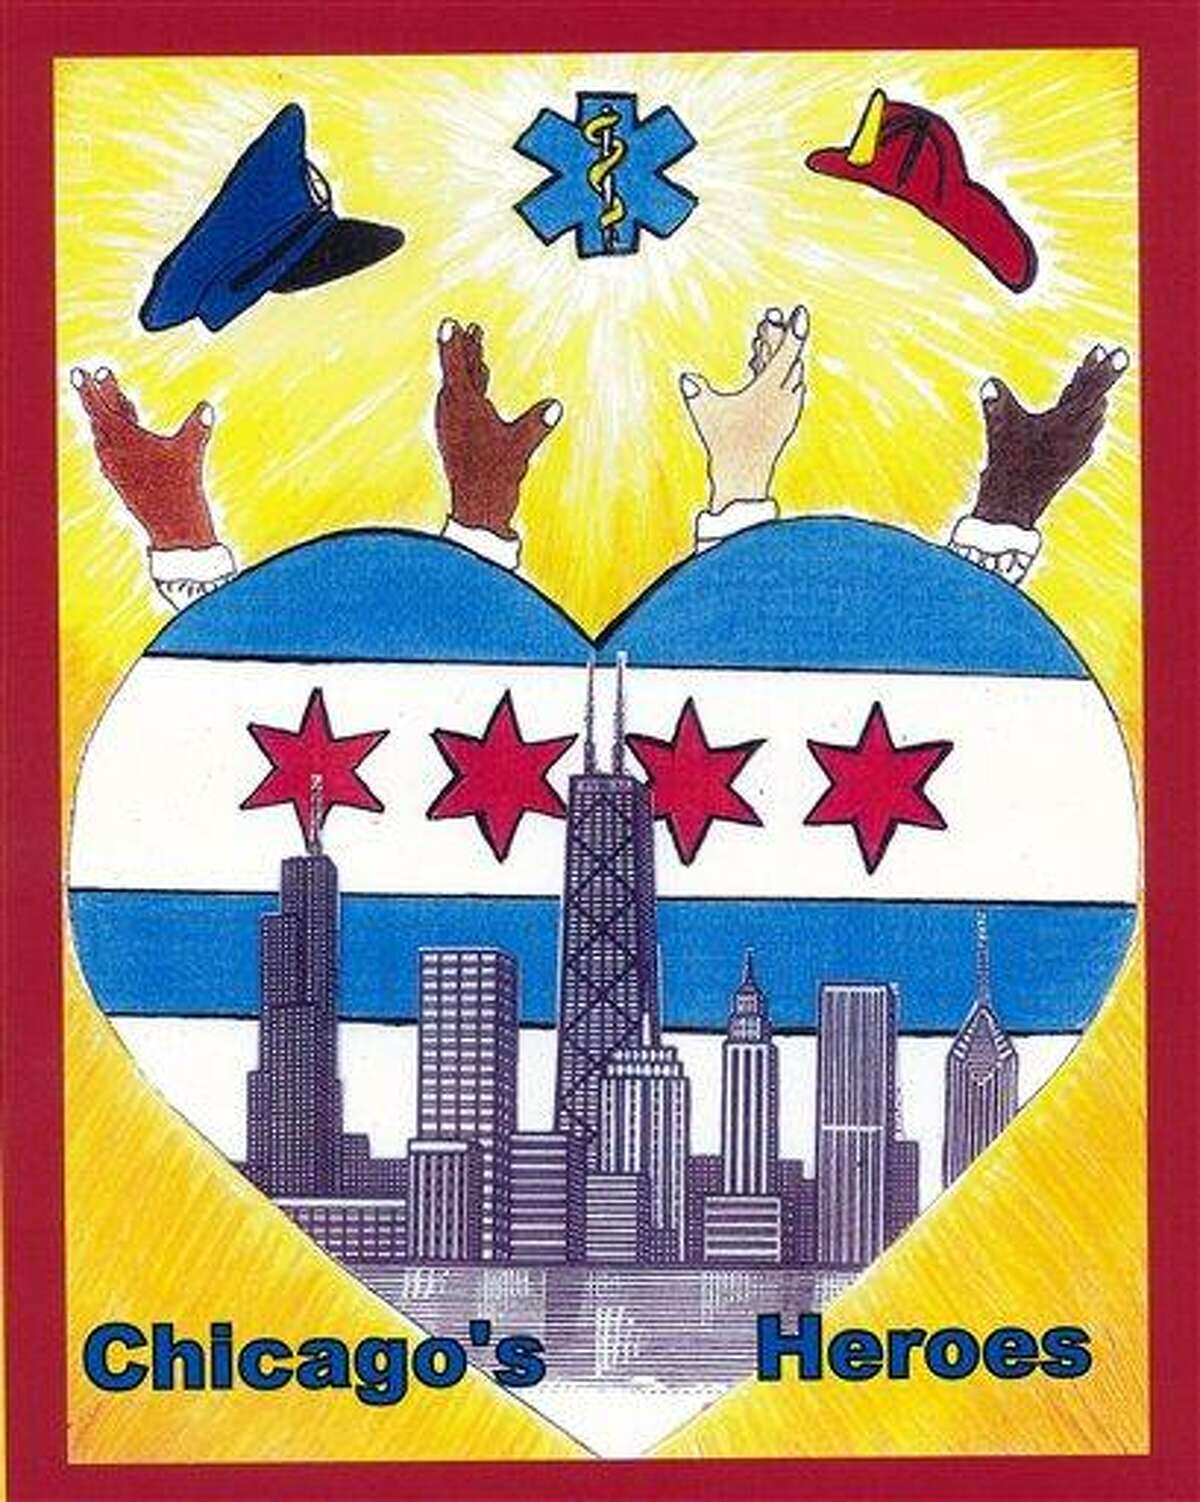 This photo taken Nov. 28, 2011 shows the winning design for the 2012-13 city of Chicago vehicle sticker that was axed Wednesday by Chicago City Clerk Susana Mendoza contending some may believe it depicts street gang signs. At the time his design was chosen winner of the city vehicle sticker student-art contest, 15-year-old Herbert Pulgar, said it was meant to honor city firefighters, paramedics and police. It includes the city's skyline inside a heart, with hands pointing toward a police hat, firefighter helmet and paramedic symbol. Officials sat the clerk's office began receiving calls Tuesday, after a blogger identified the hands depicted on the sticker as symbols flashed by members of a street gang. Associated Press